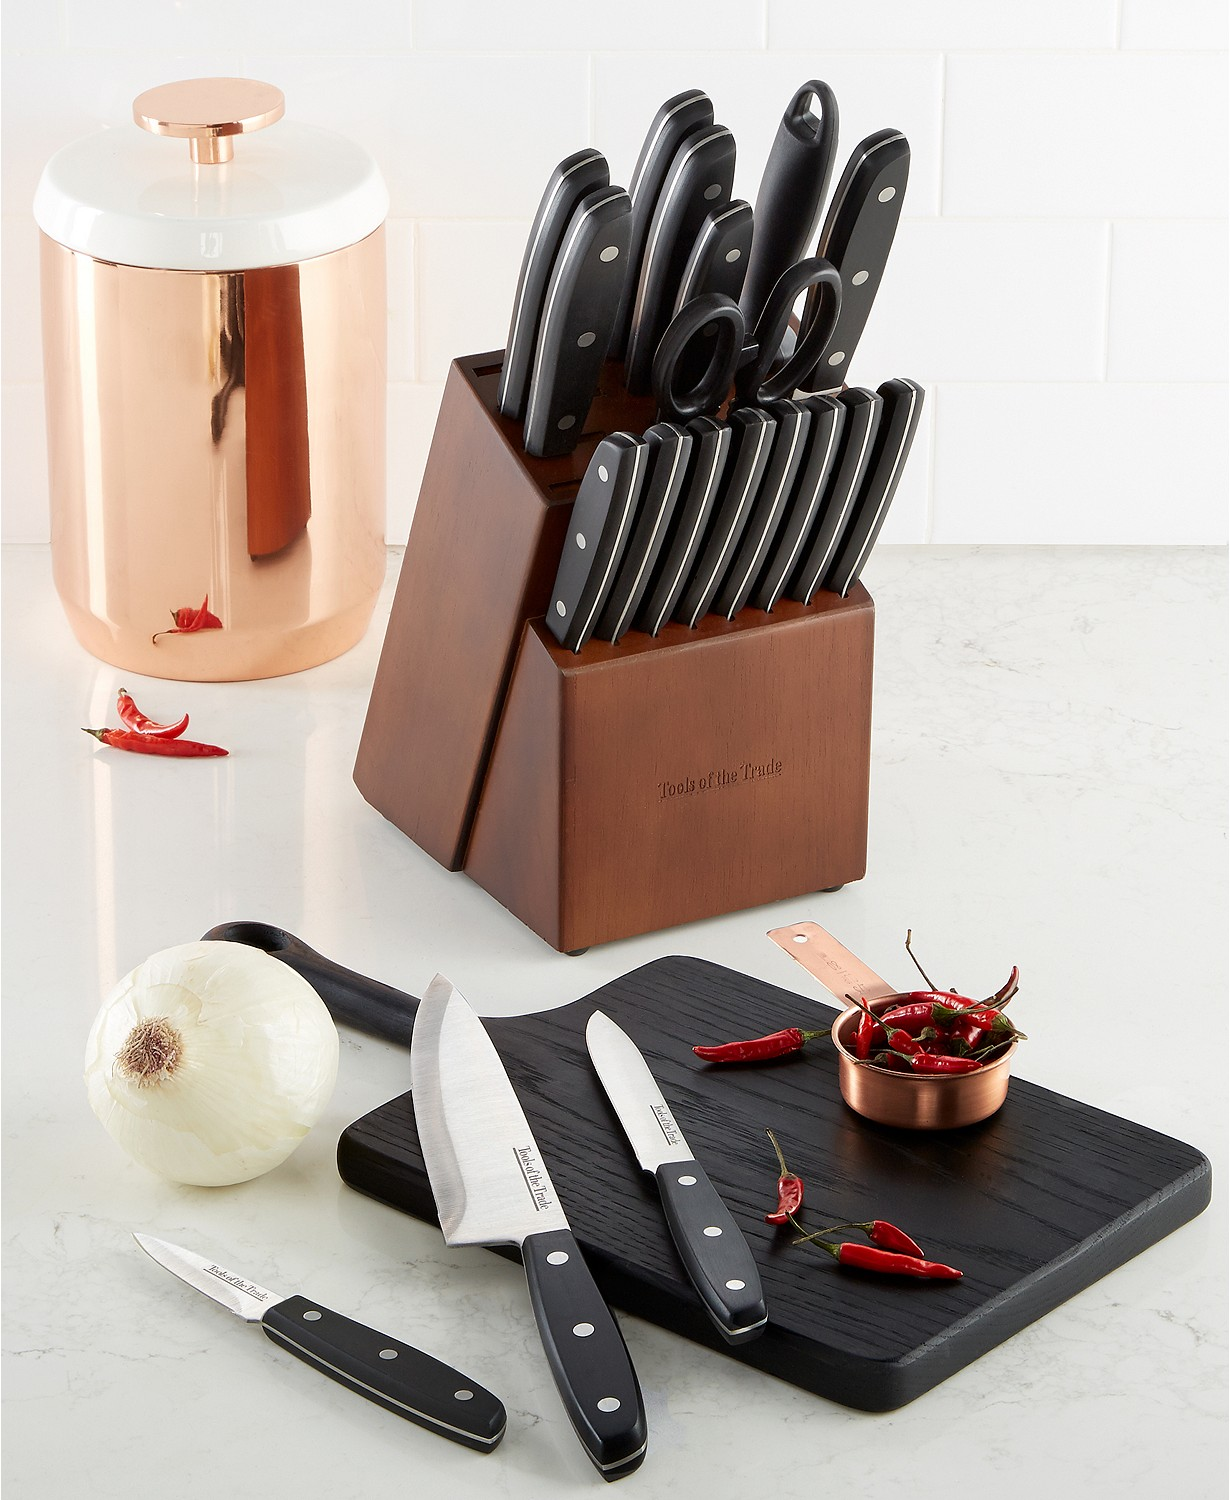 Tools of The Trade 20-Piece Cutlery Set with Block